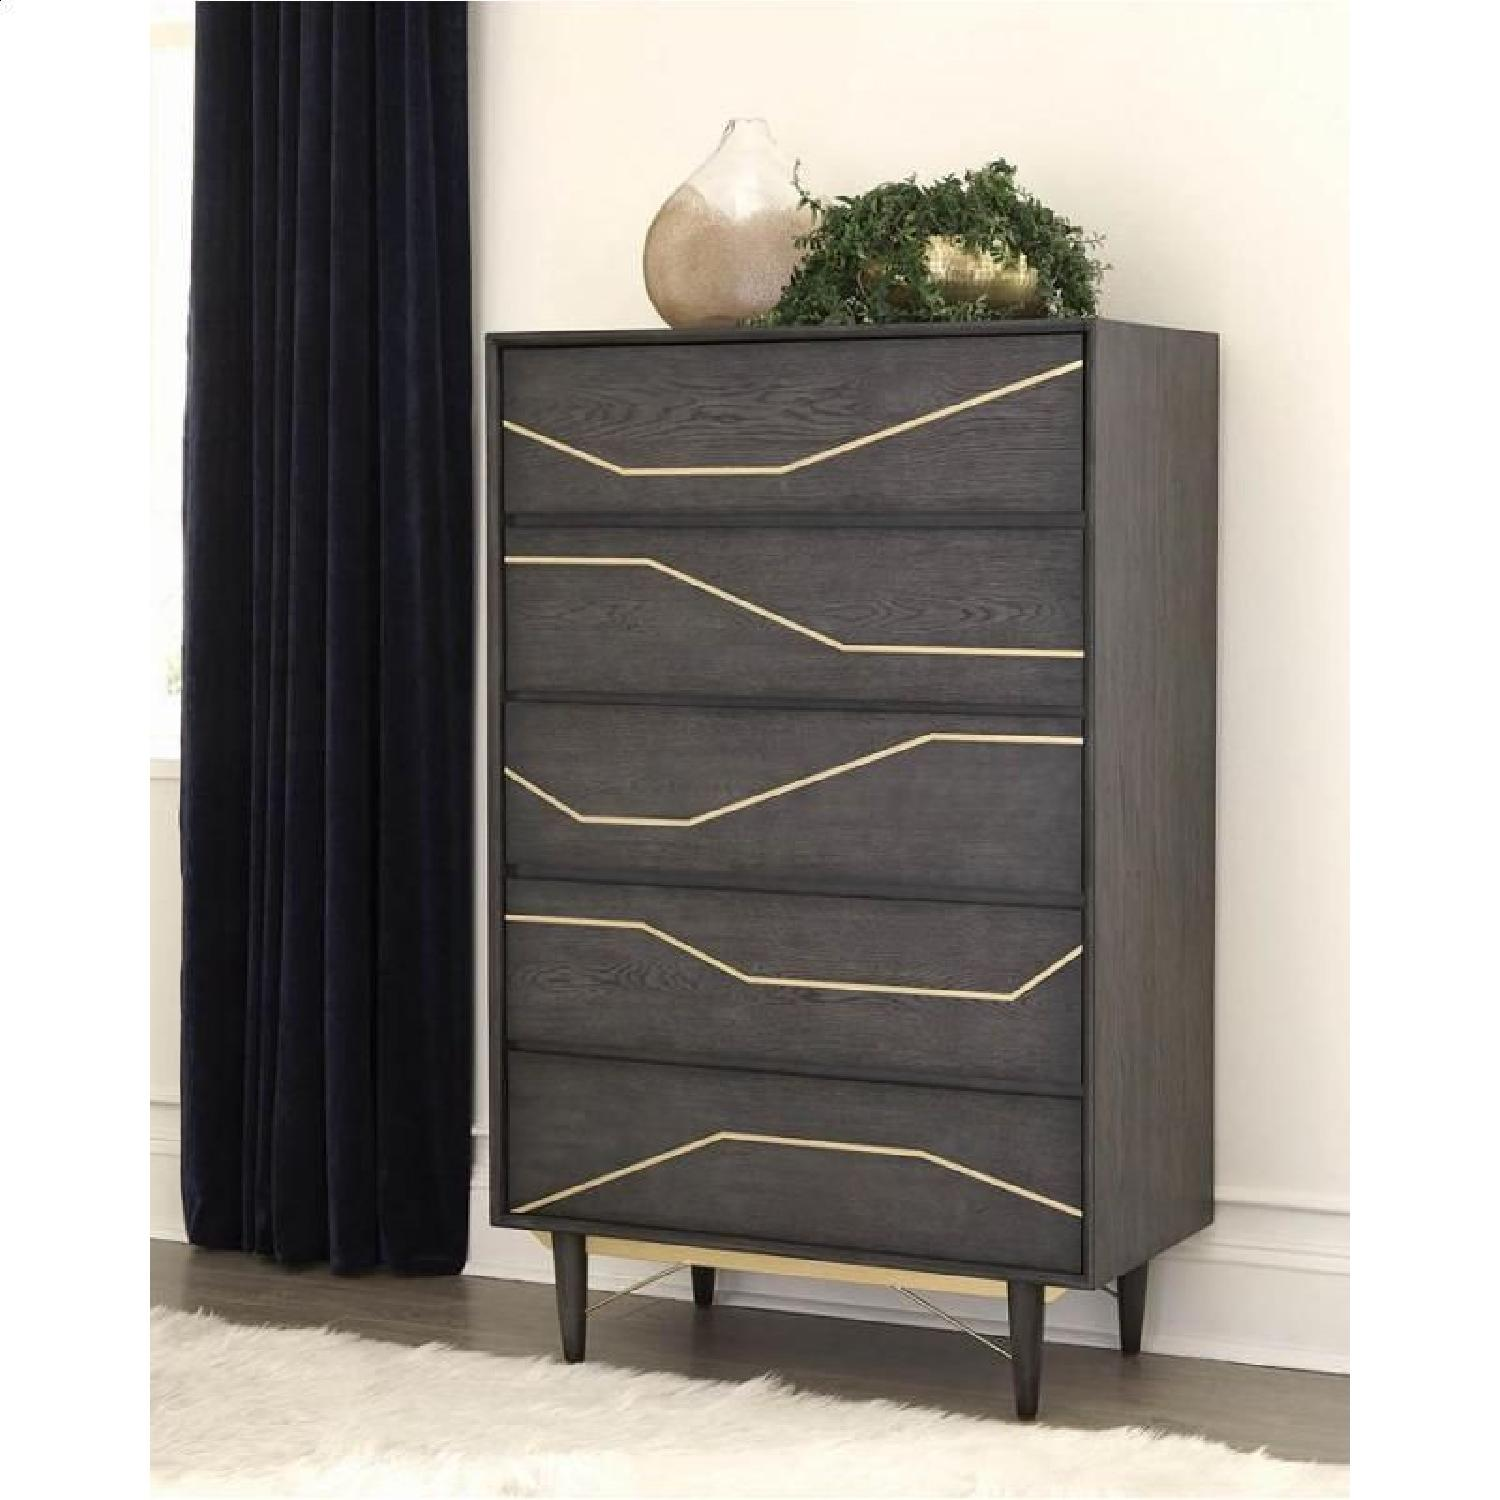 Modern Chest in Graphite Finish w/ Gold Color Inlay - image-3